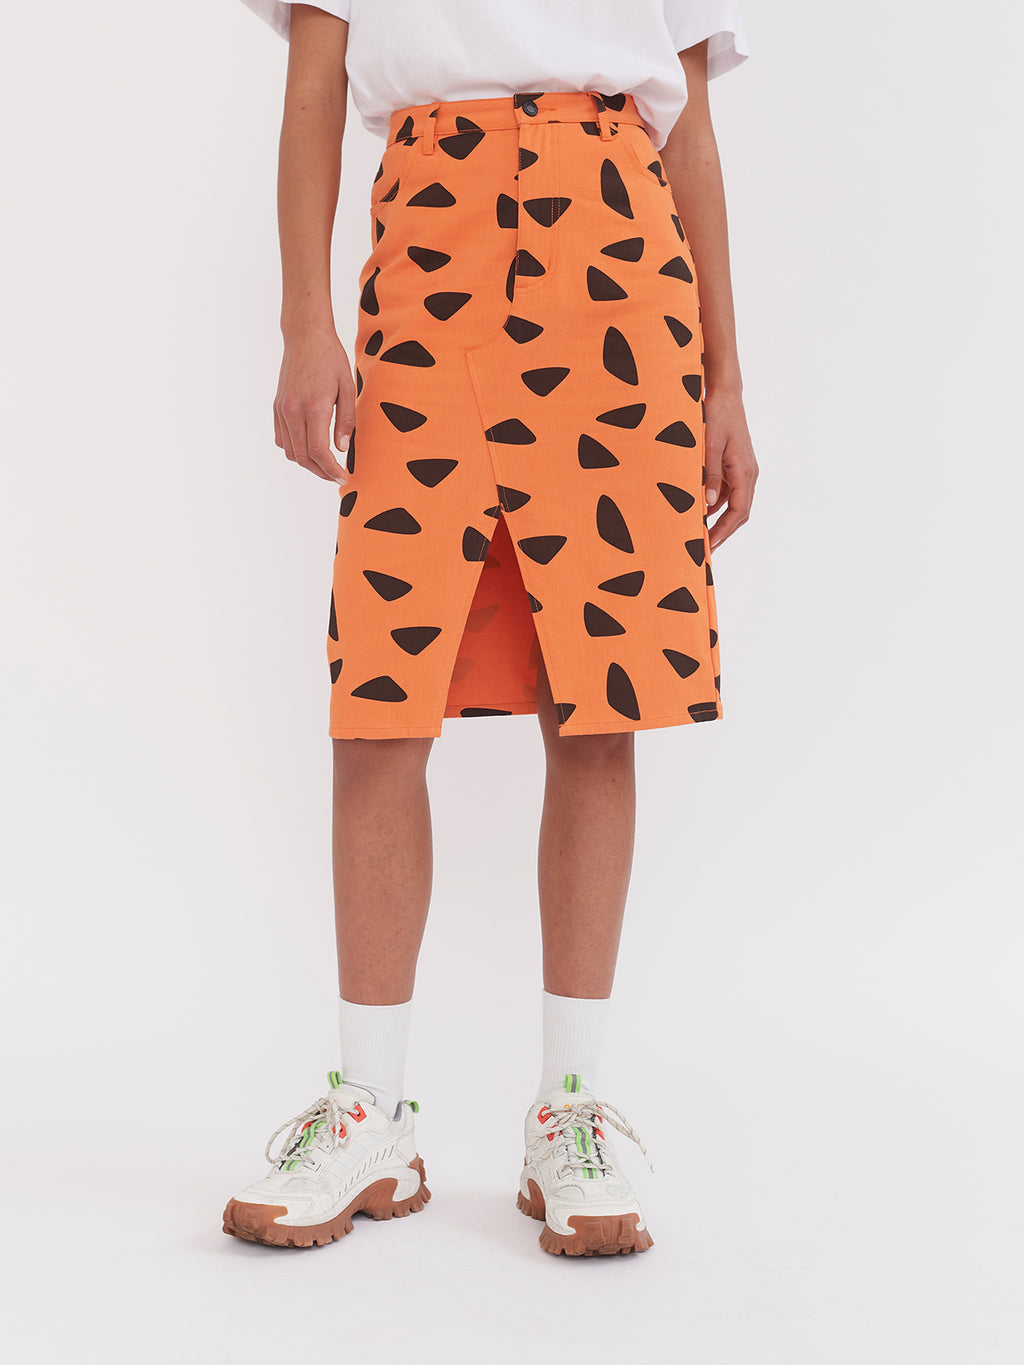 Lazy Oaf x The Flintstones Rubble Skirt